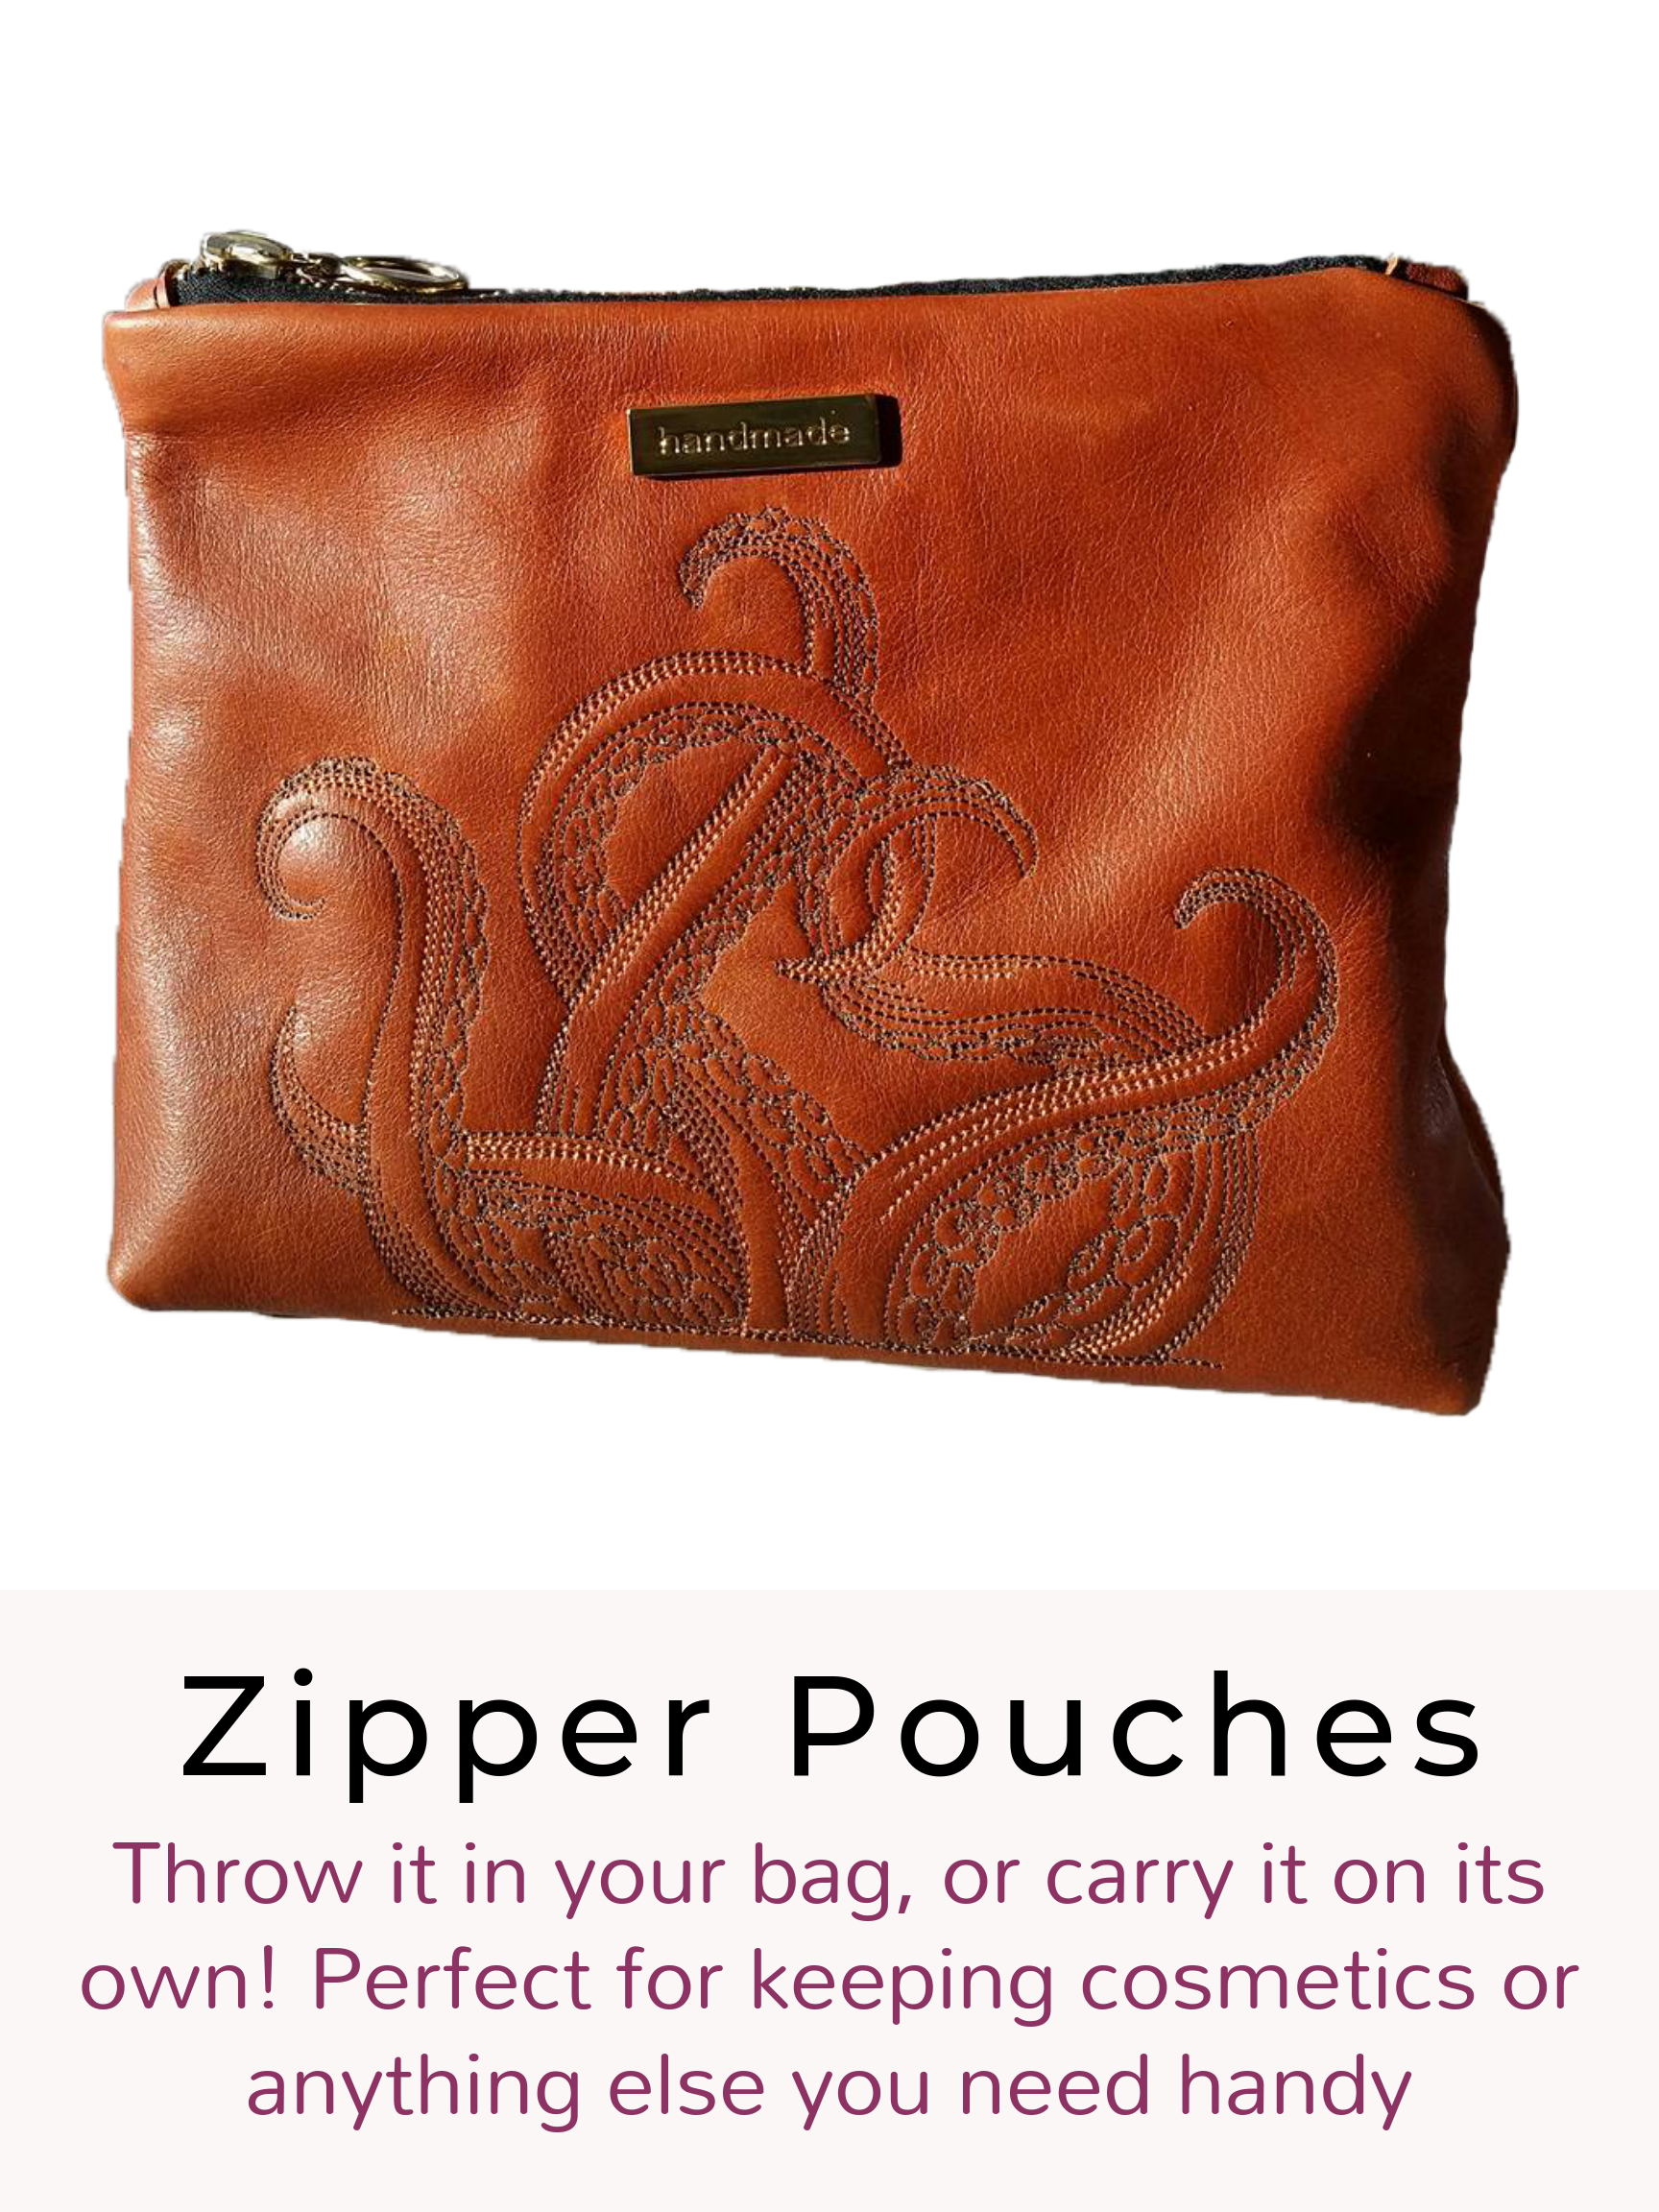 ZipperPouches.png